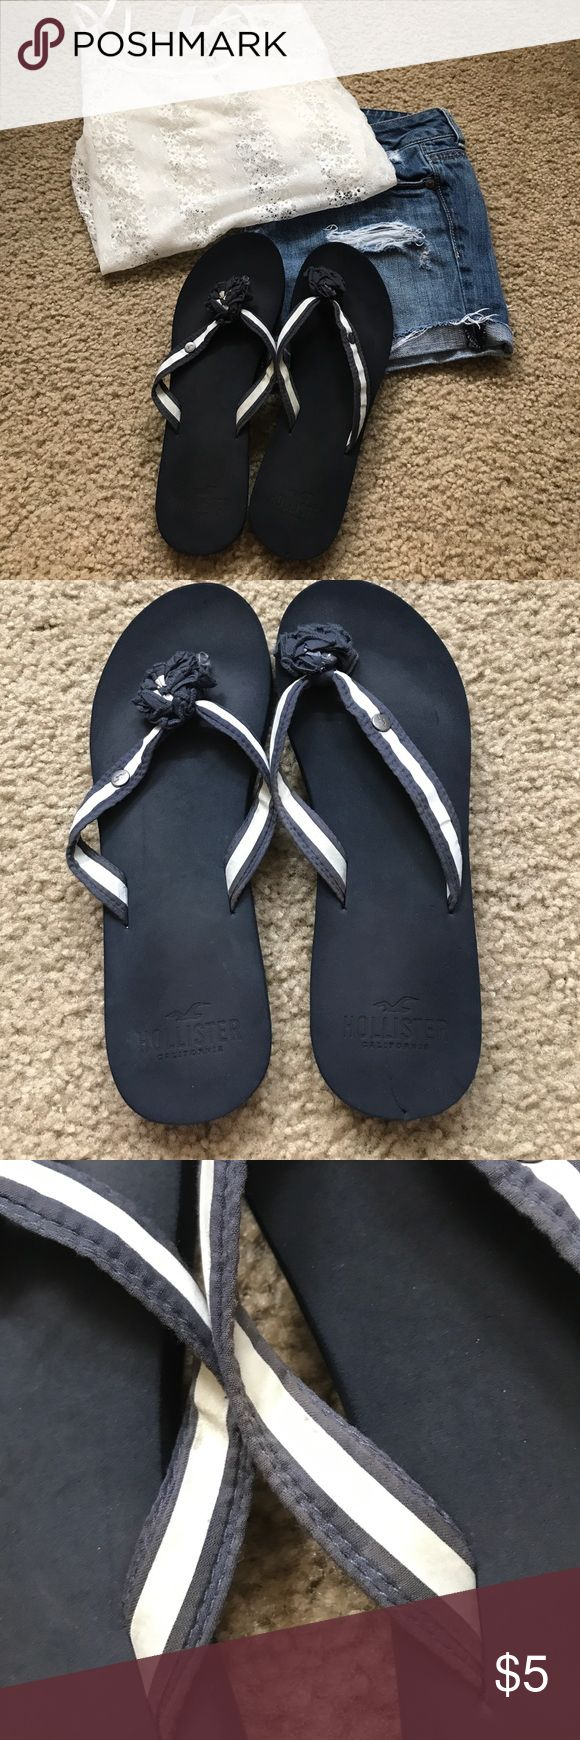 Hollister flip flops. Navy and white stripe. Slight flaws pictured above. Slight smudges on white striped. Small hole in bottom of right left shoe. Size 6/7 Hollister Shoes Sandals